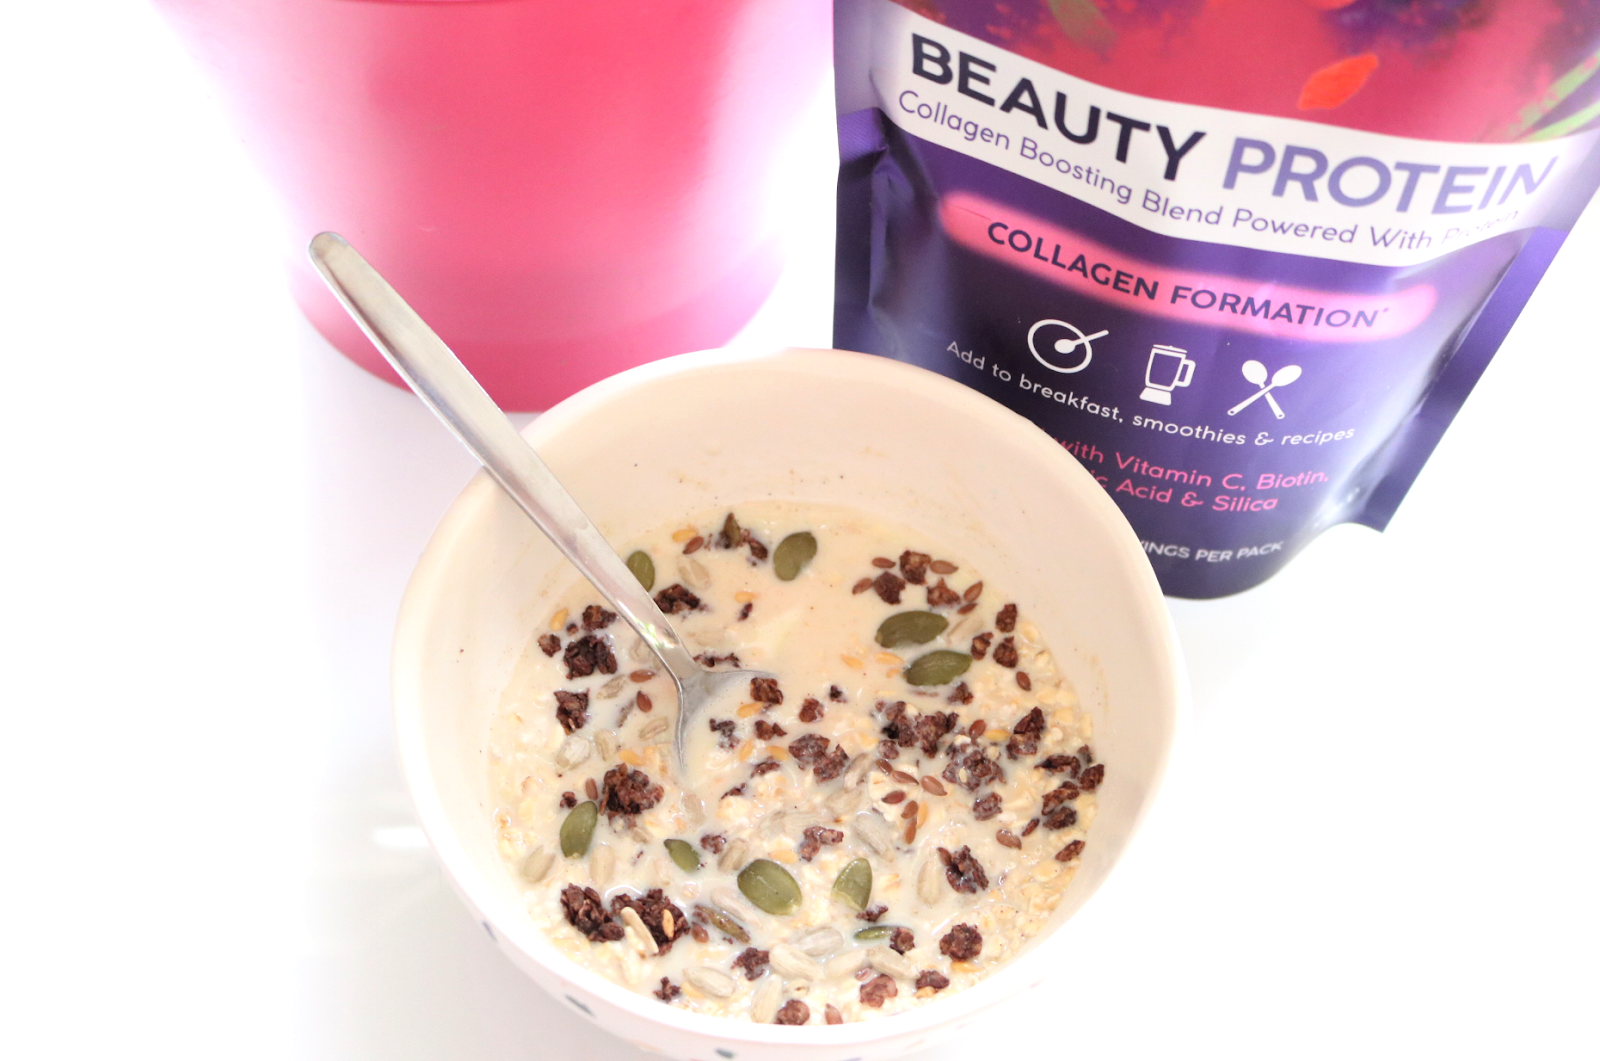 Bioglan Superfoods Beauty Protein Powder review #VeganBeauty